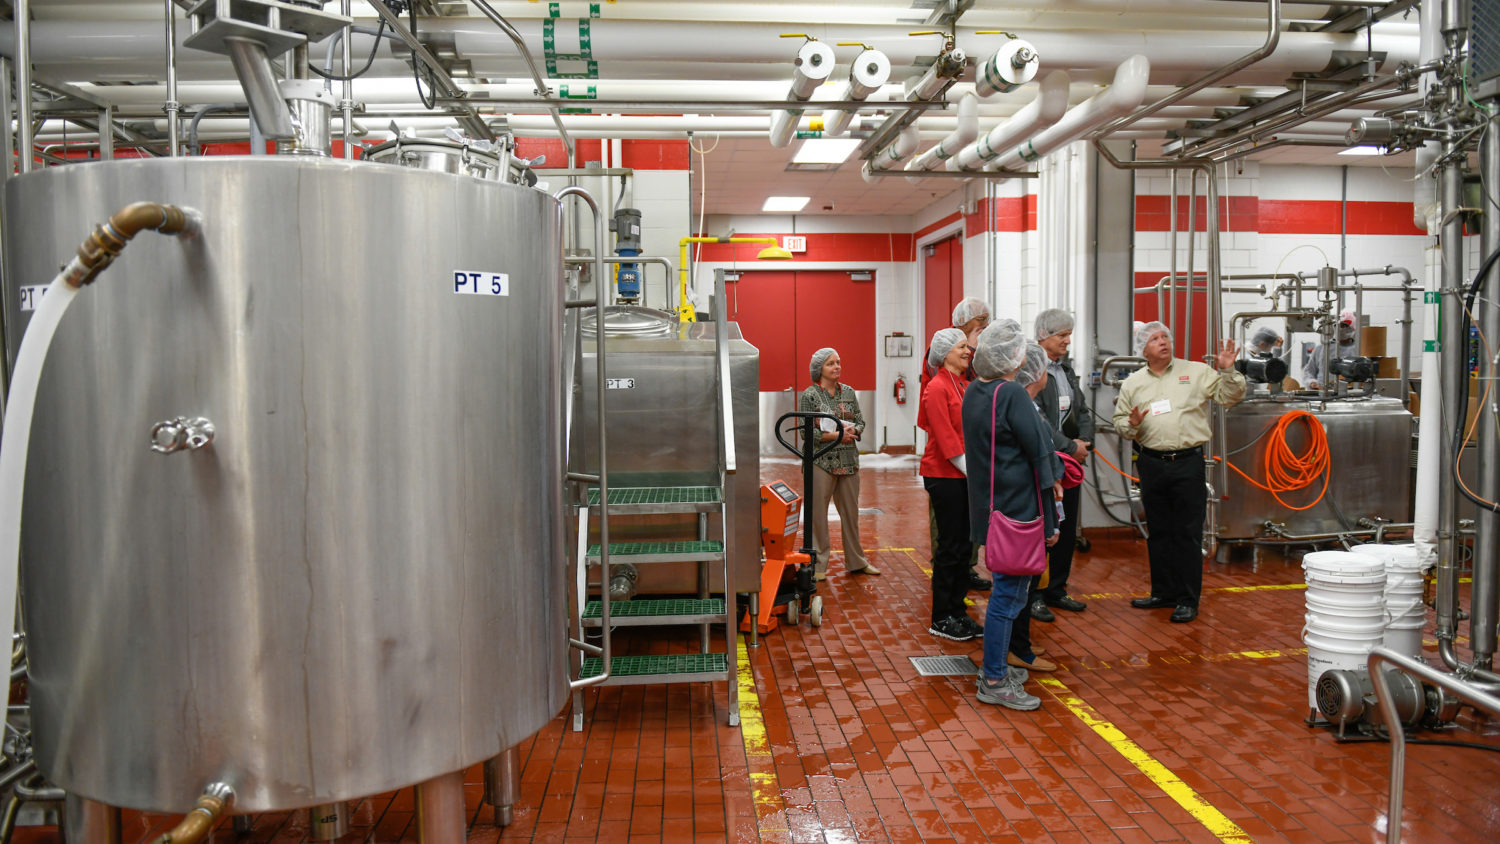 Group of people wearing hair nets tour a dairy production facility.